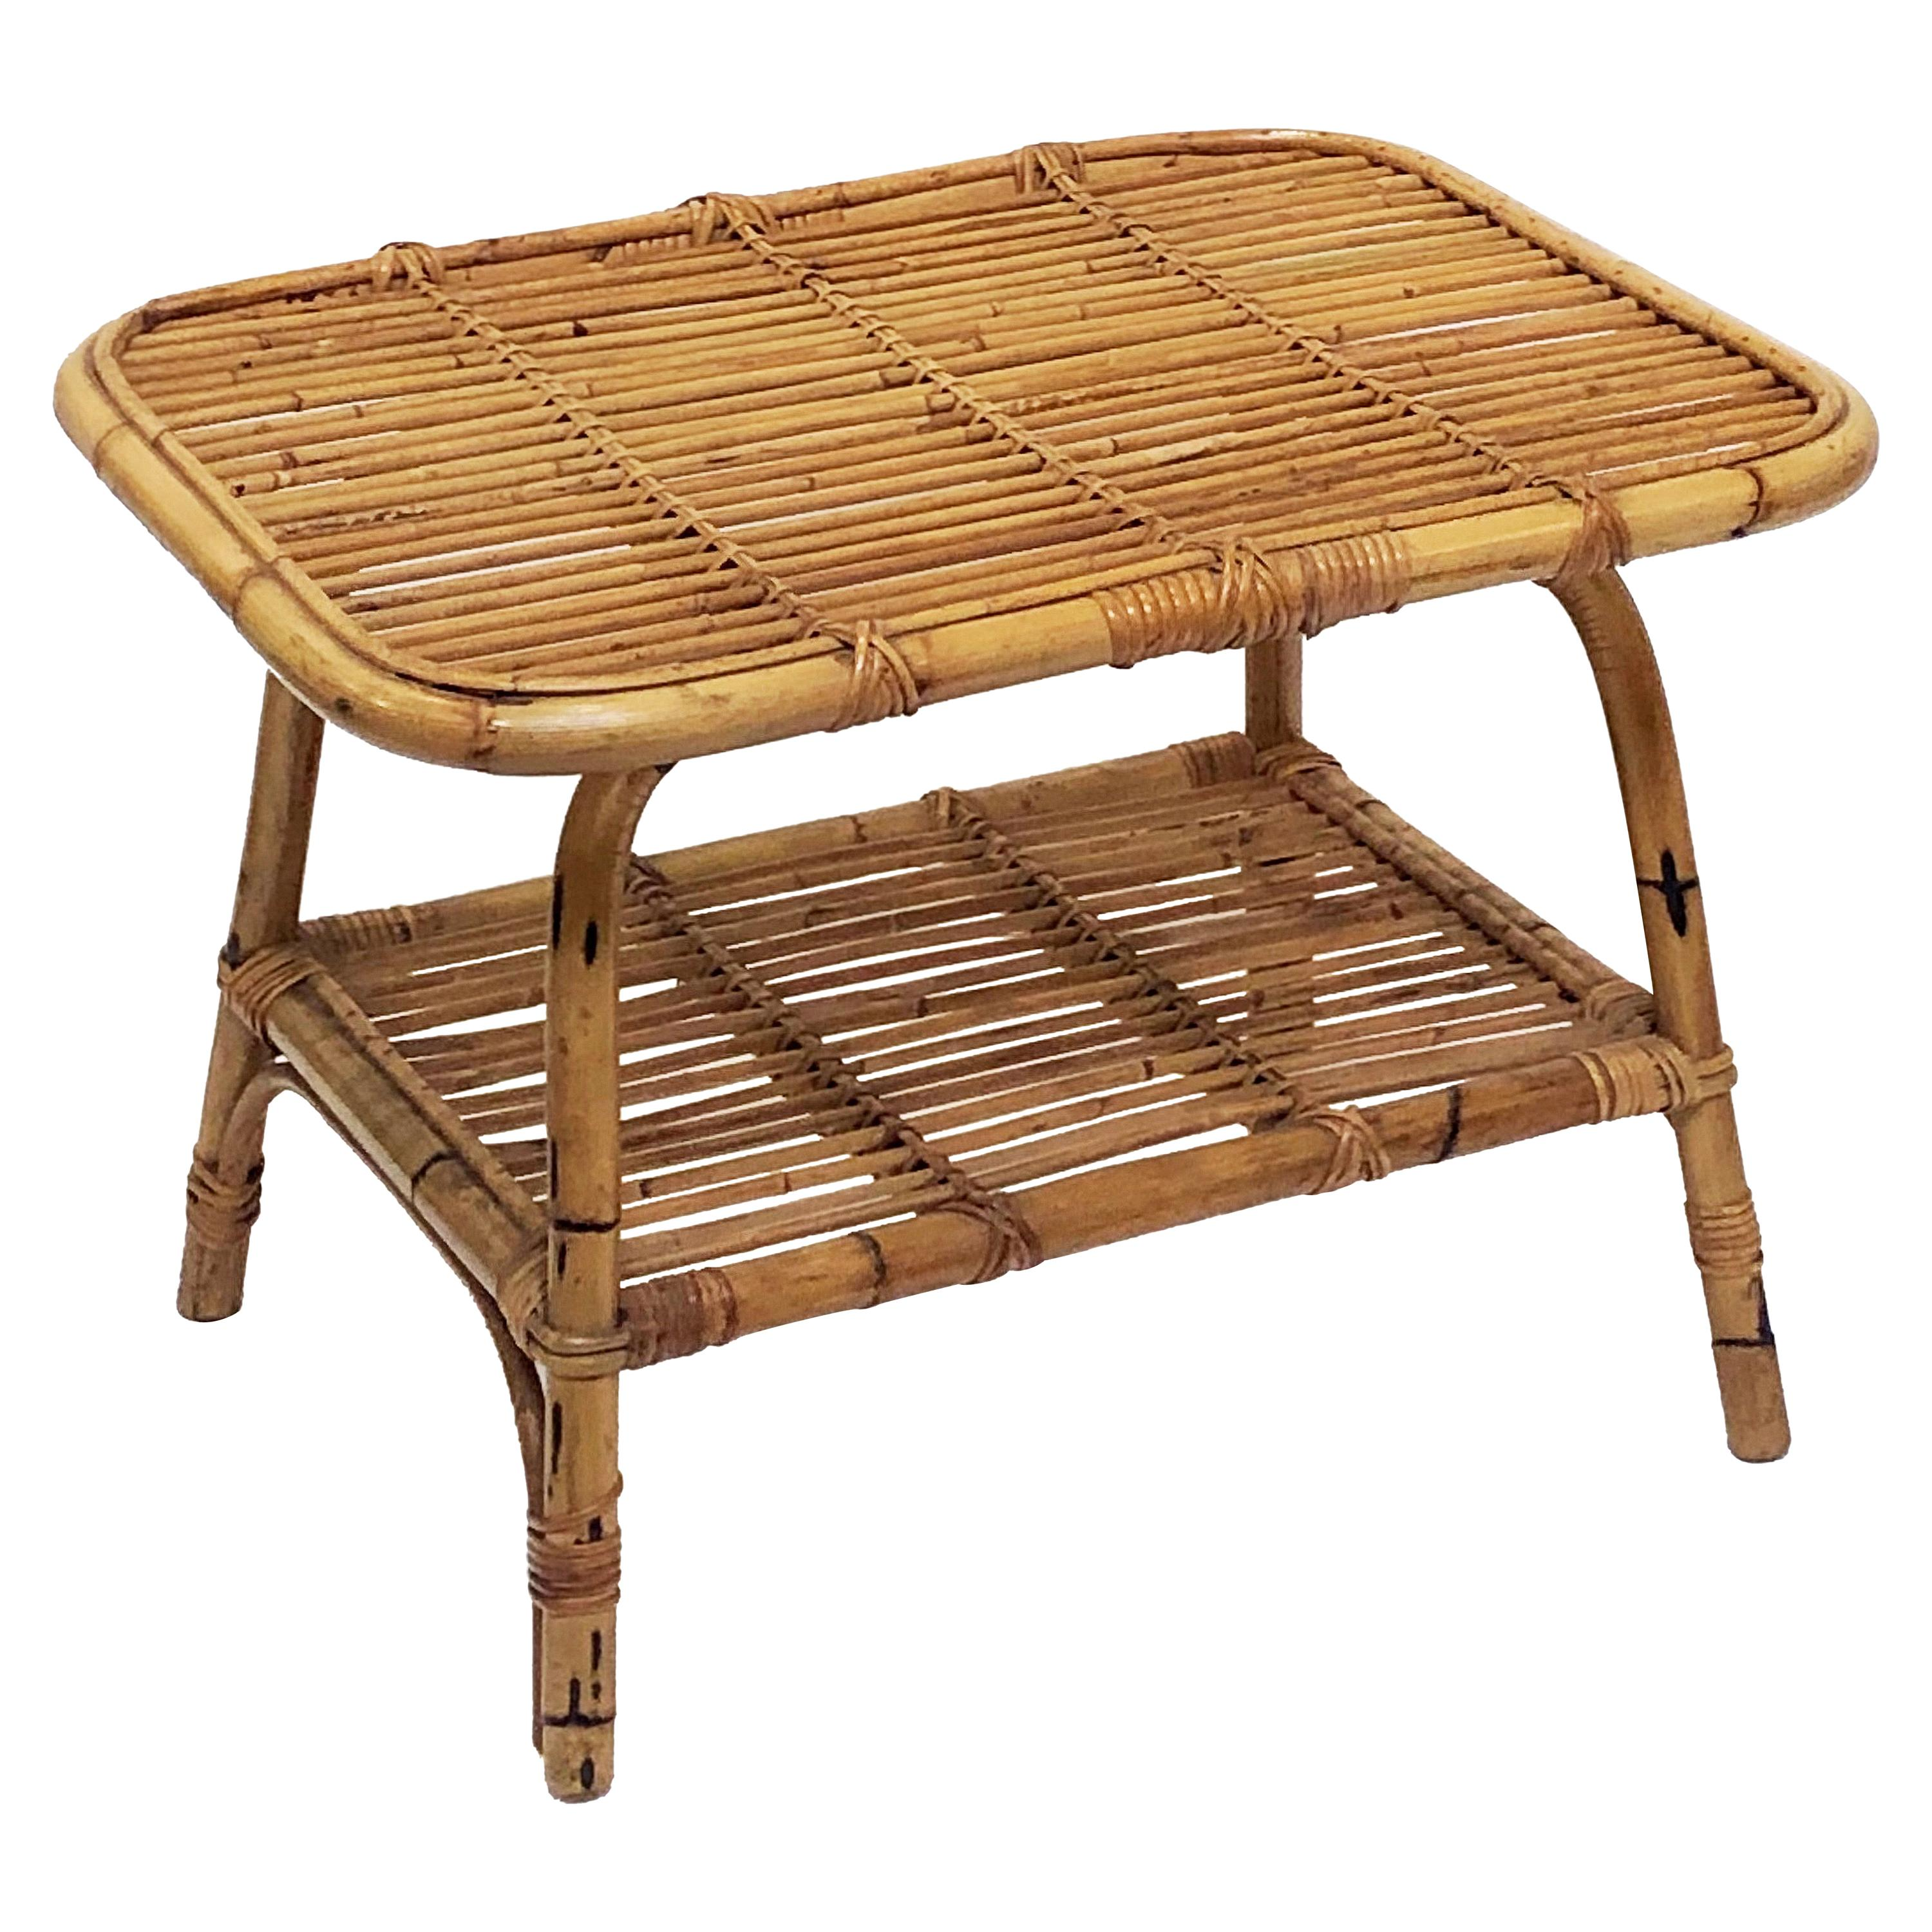 a552962e3 Bamboo Side Tables - 161 For Sale at 1stdibs